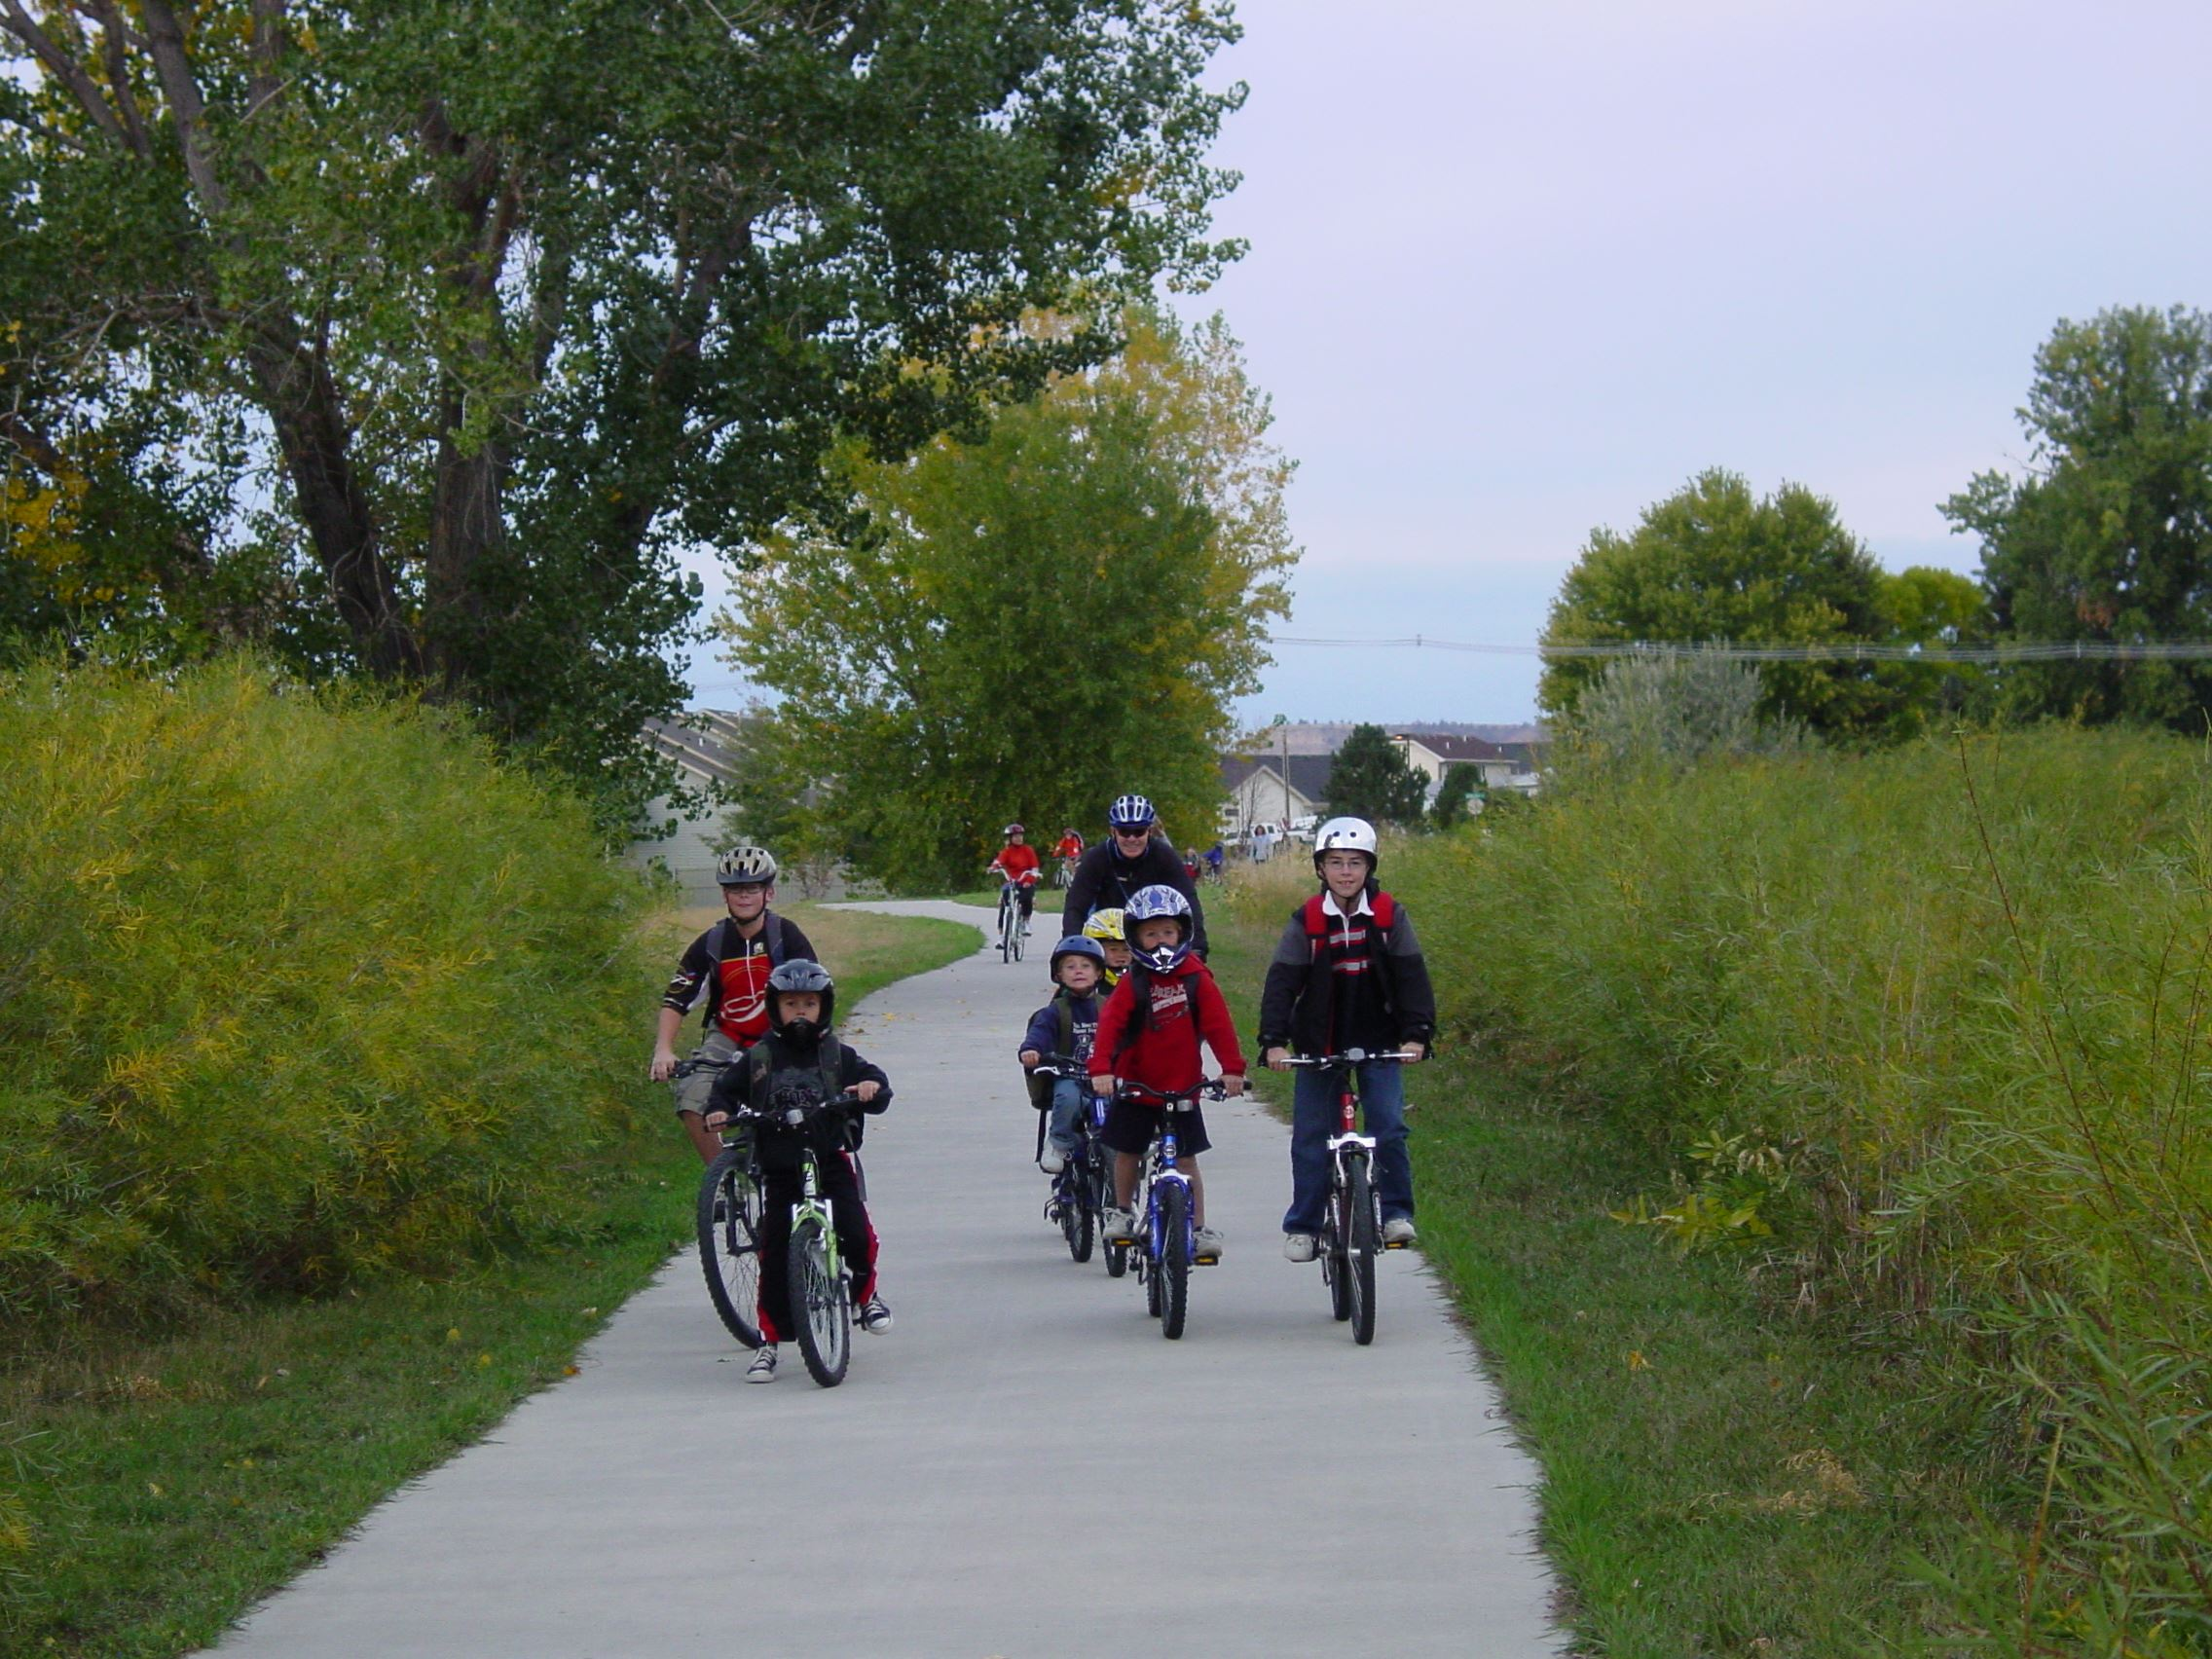 Mayor riding with kids on trail for Bike to School Week